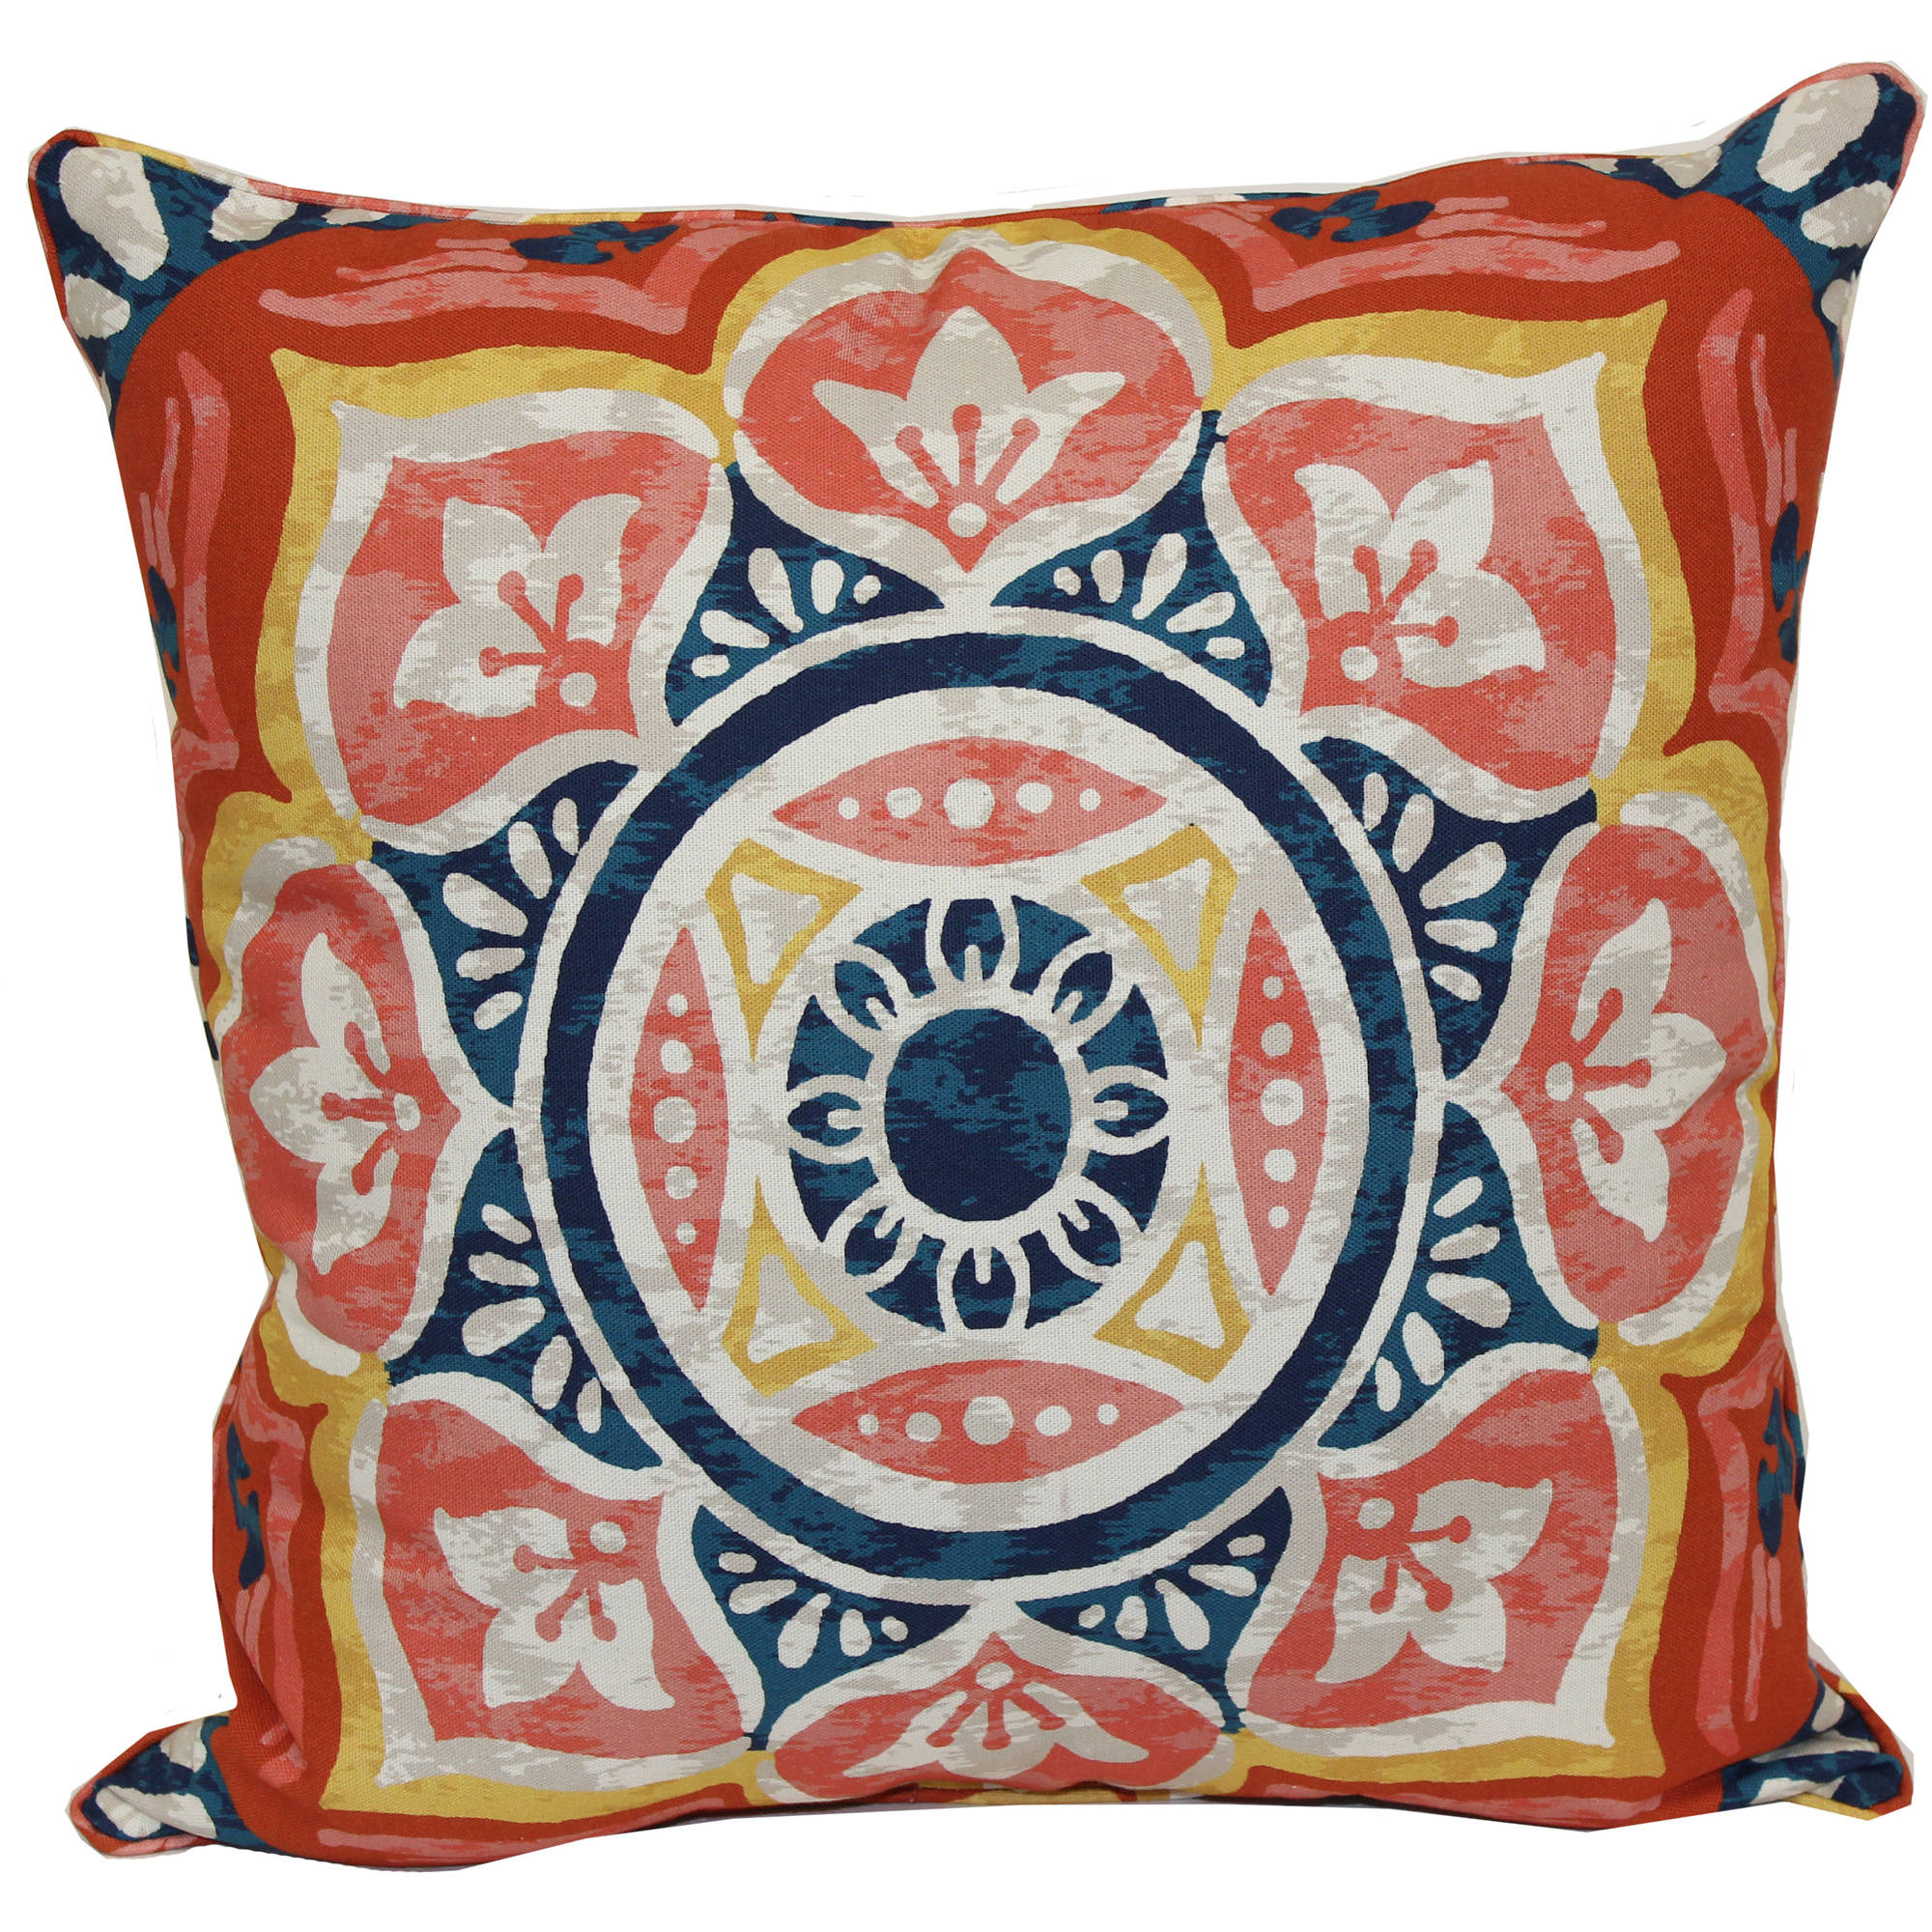 Better Homes And Gardens Medallion Outdoor Toss Pillow   Walmart.com